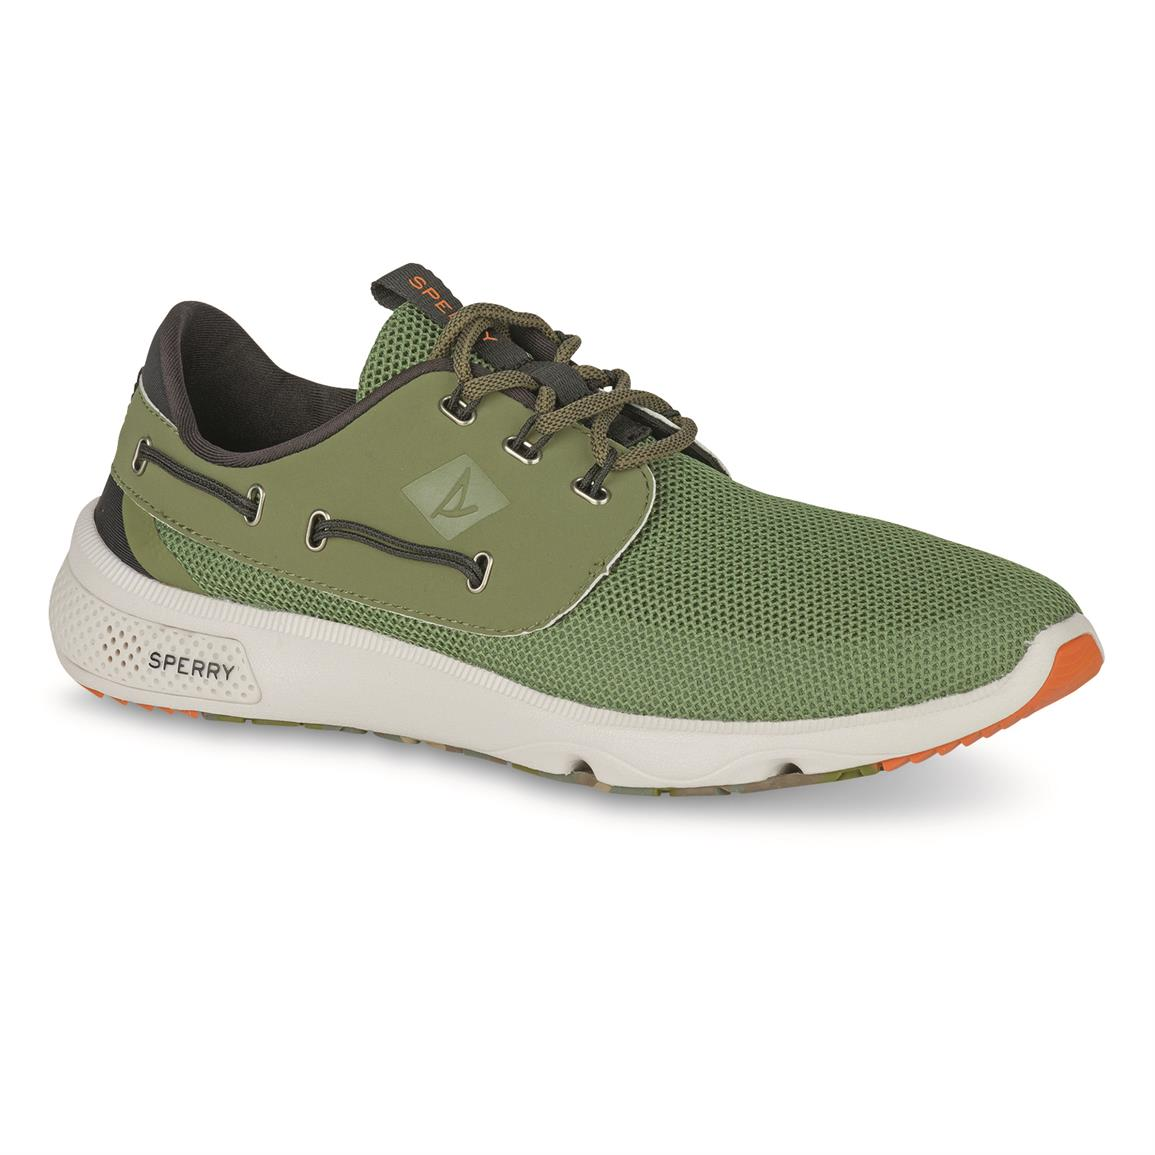 Sperry Men's 7 Seas 3 Eye Boat Shoes, Olive Camo